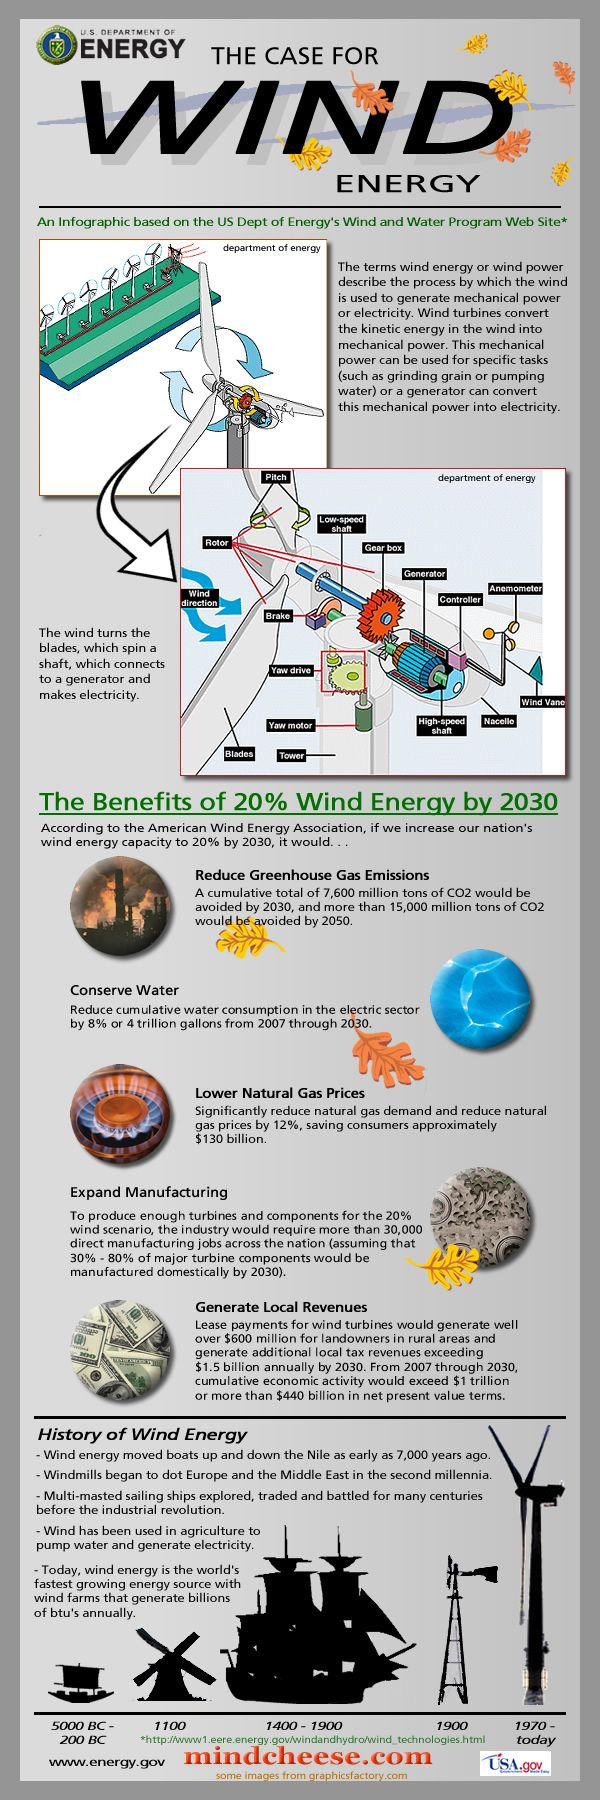 History of wind energy: Wind Energy, Renewals Energy, Alternative Energy, Energy Sources, Energy Facts, Energy Infographic, Solar Power, Green Energy, Wind Power